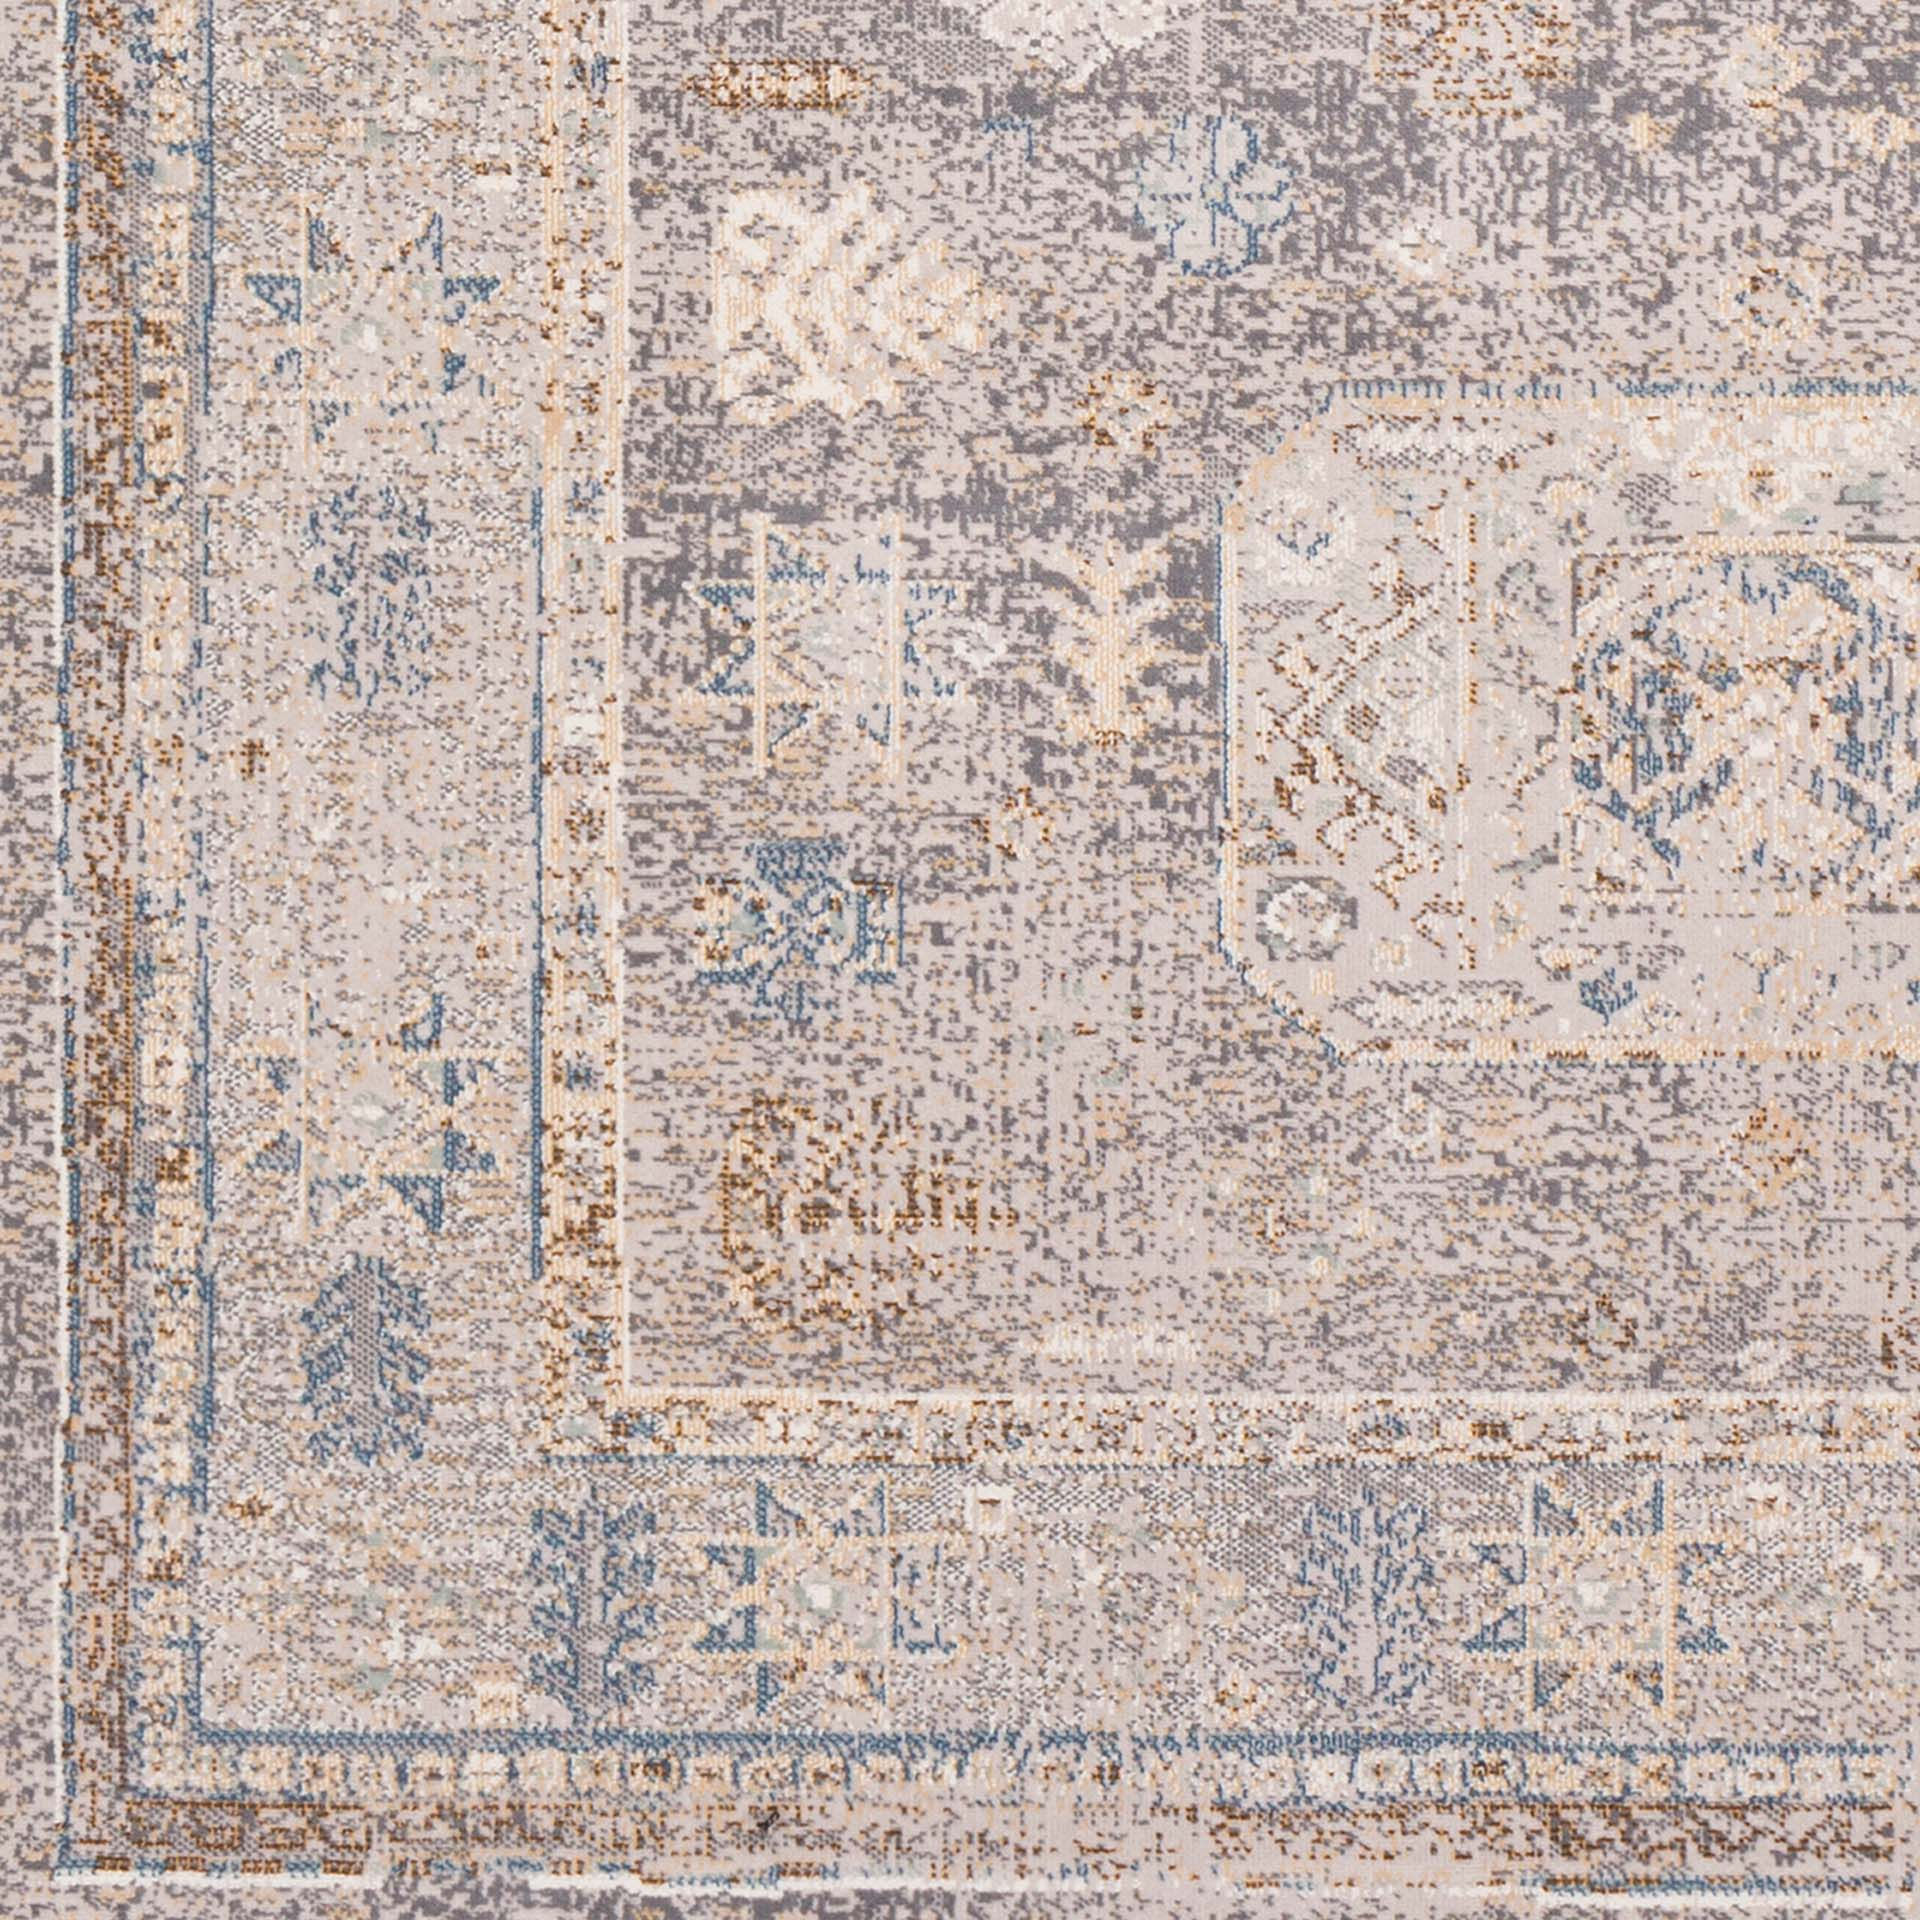 Neutral machine-made area rug from Israel with hints of beige, gray, blue and brown - Close Up